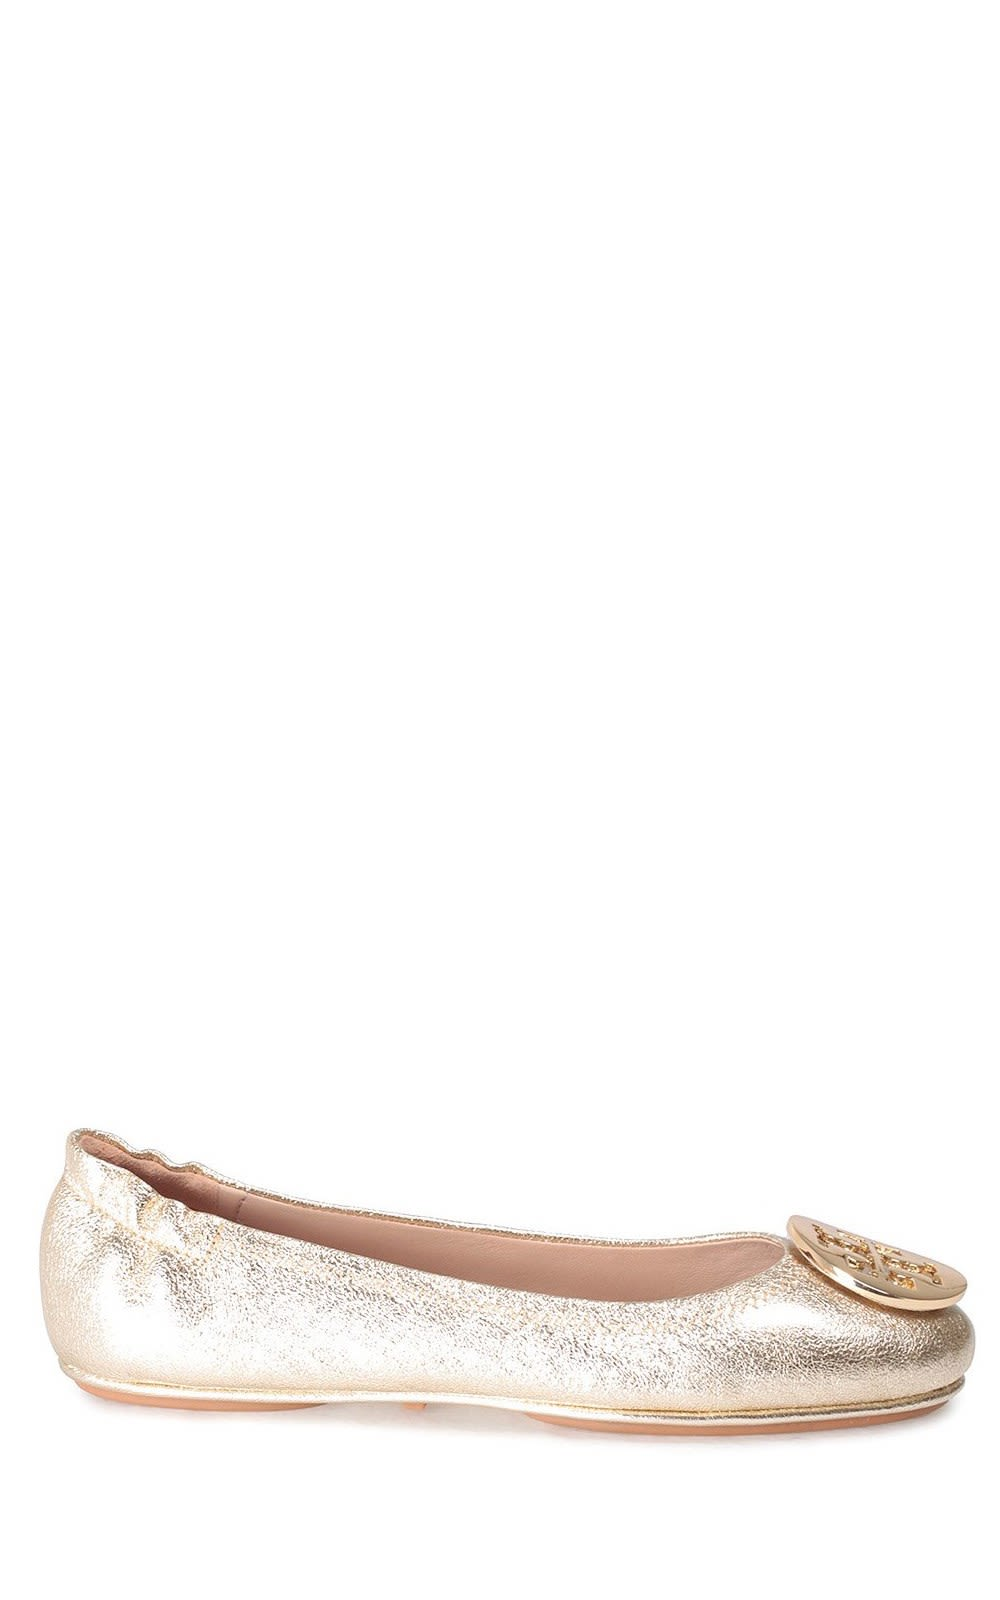 Tory Burch Minnie Travel Metallic-leather Ballet Flats